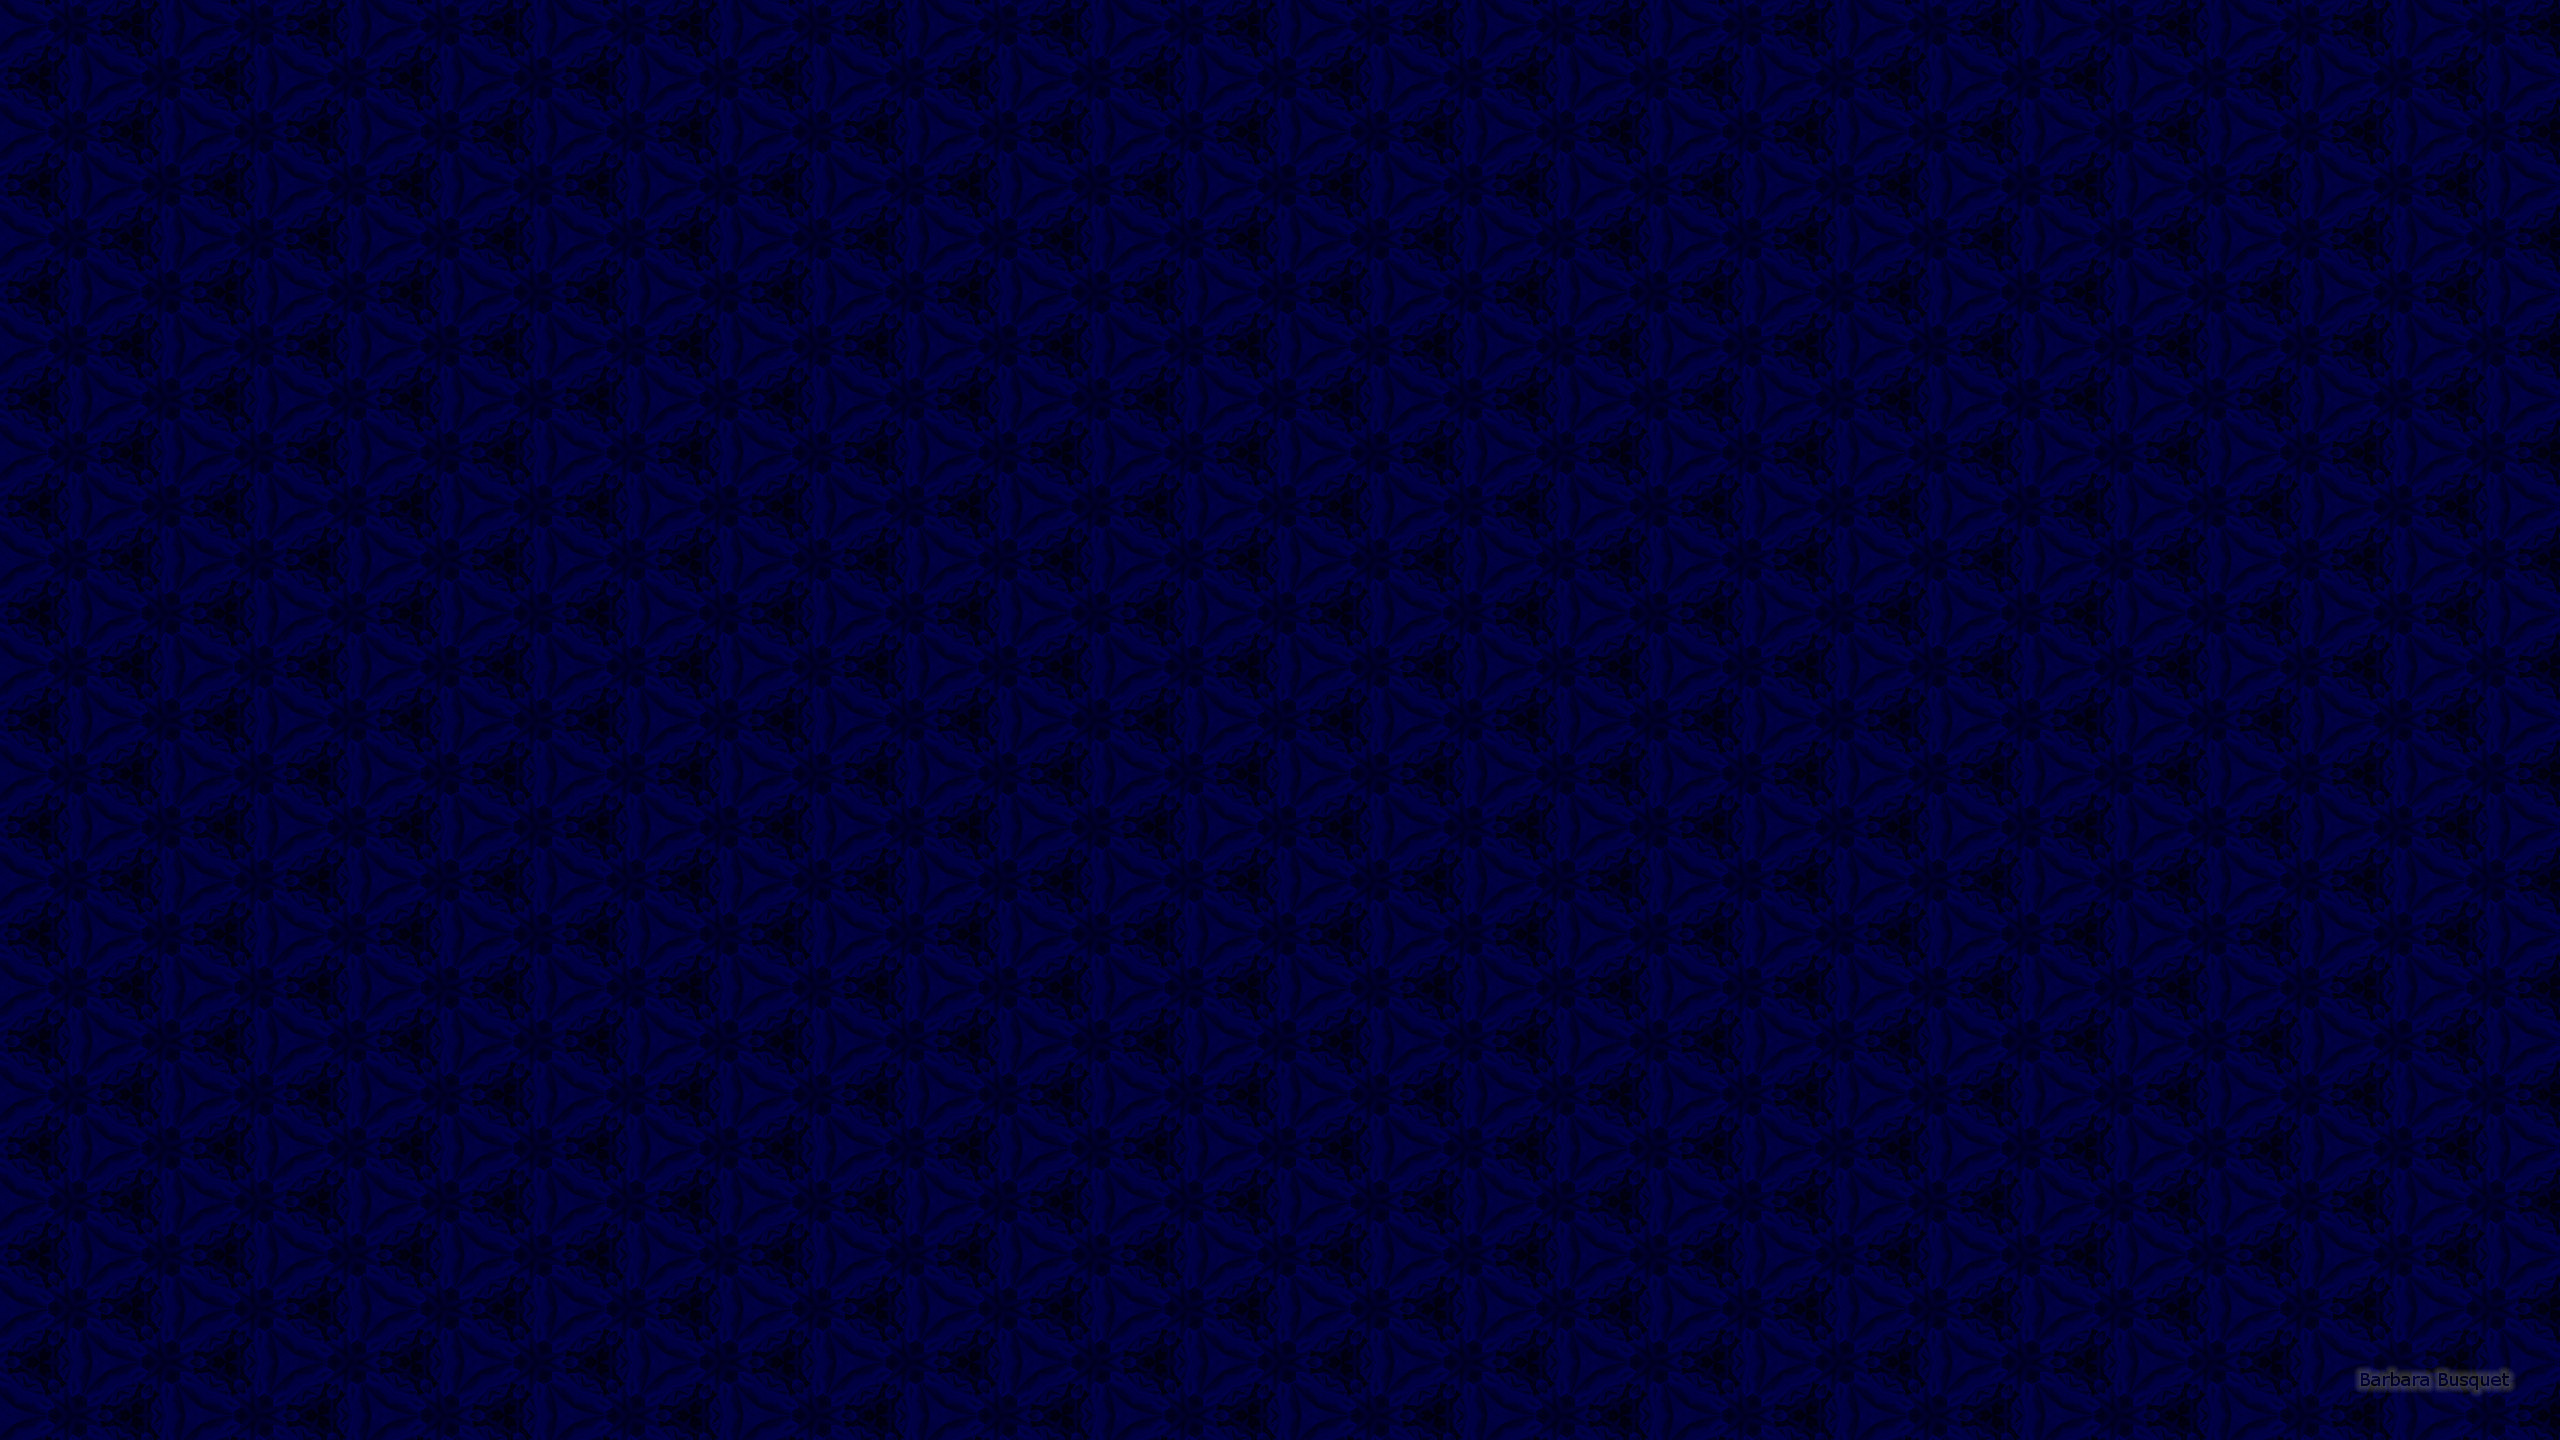 2560x1440 Dark blue triangle wallpaper with lors of the night #9036